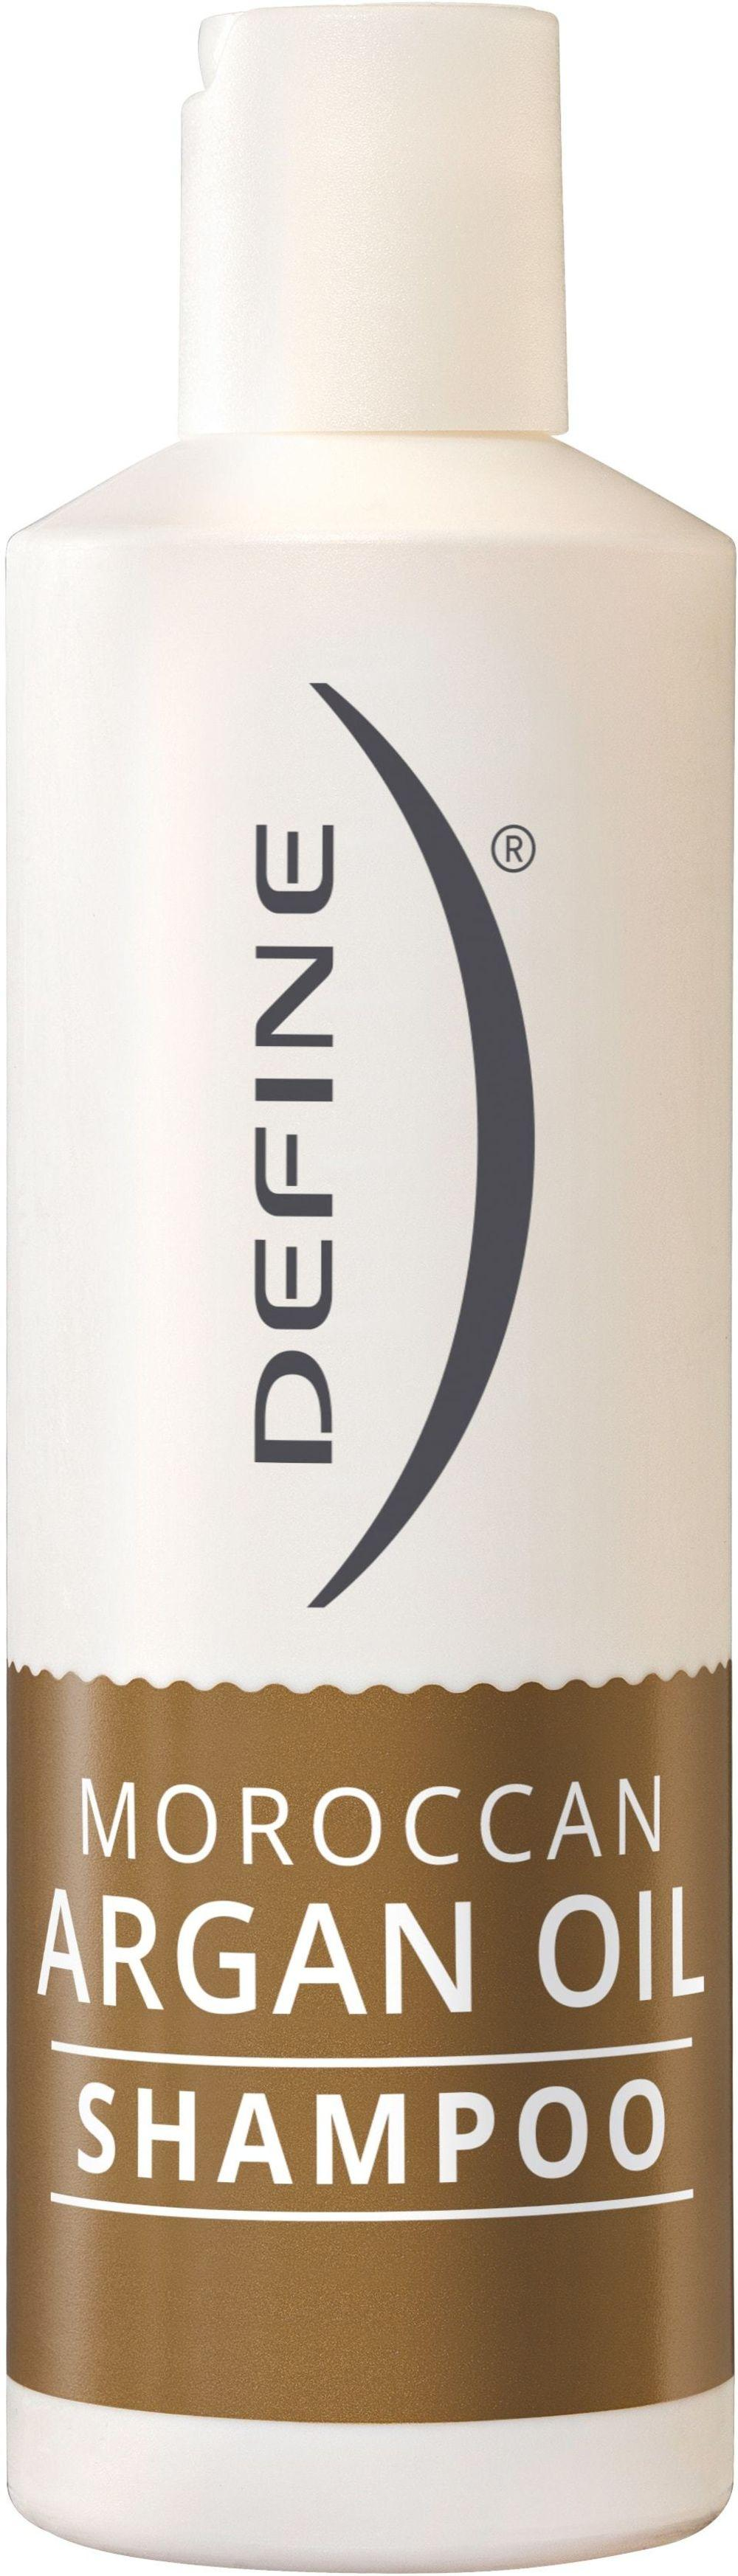 Define Argan Oil Shampoo 250 ml